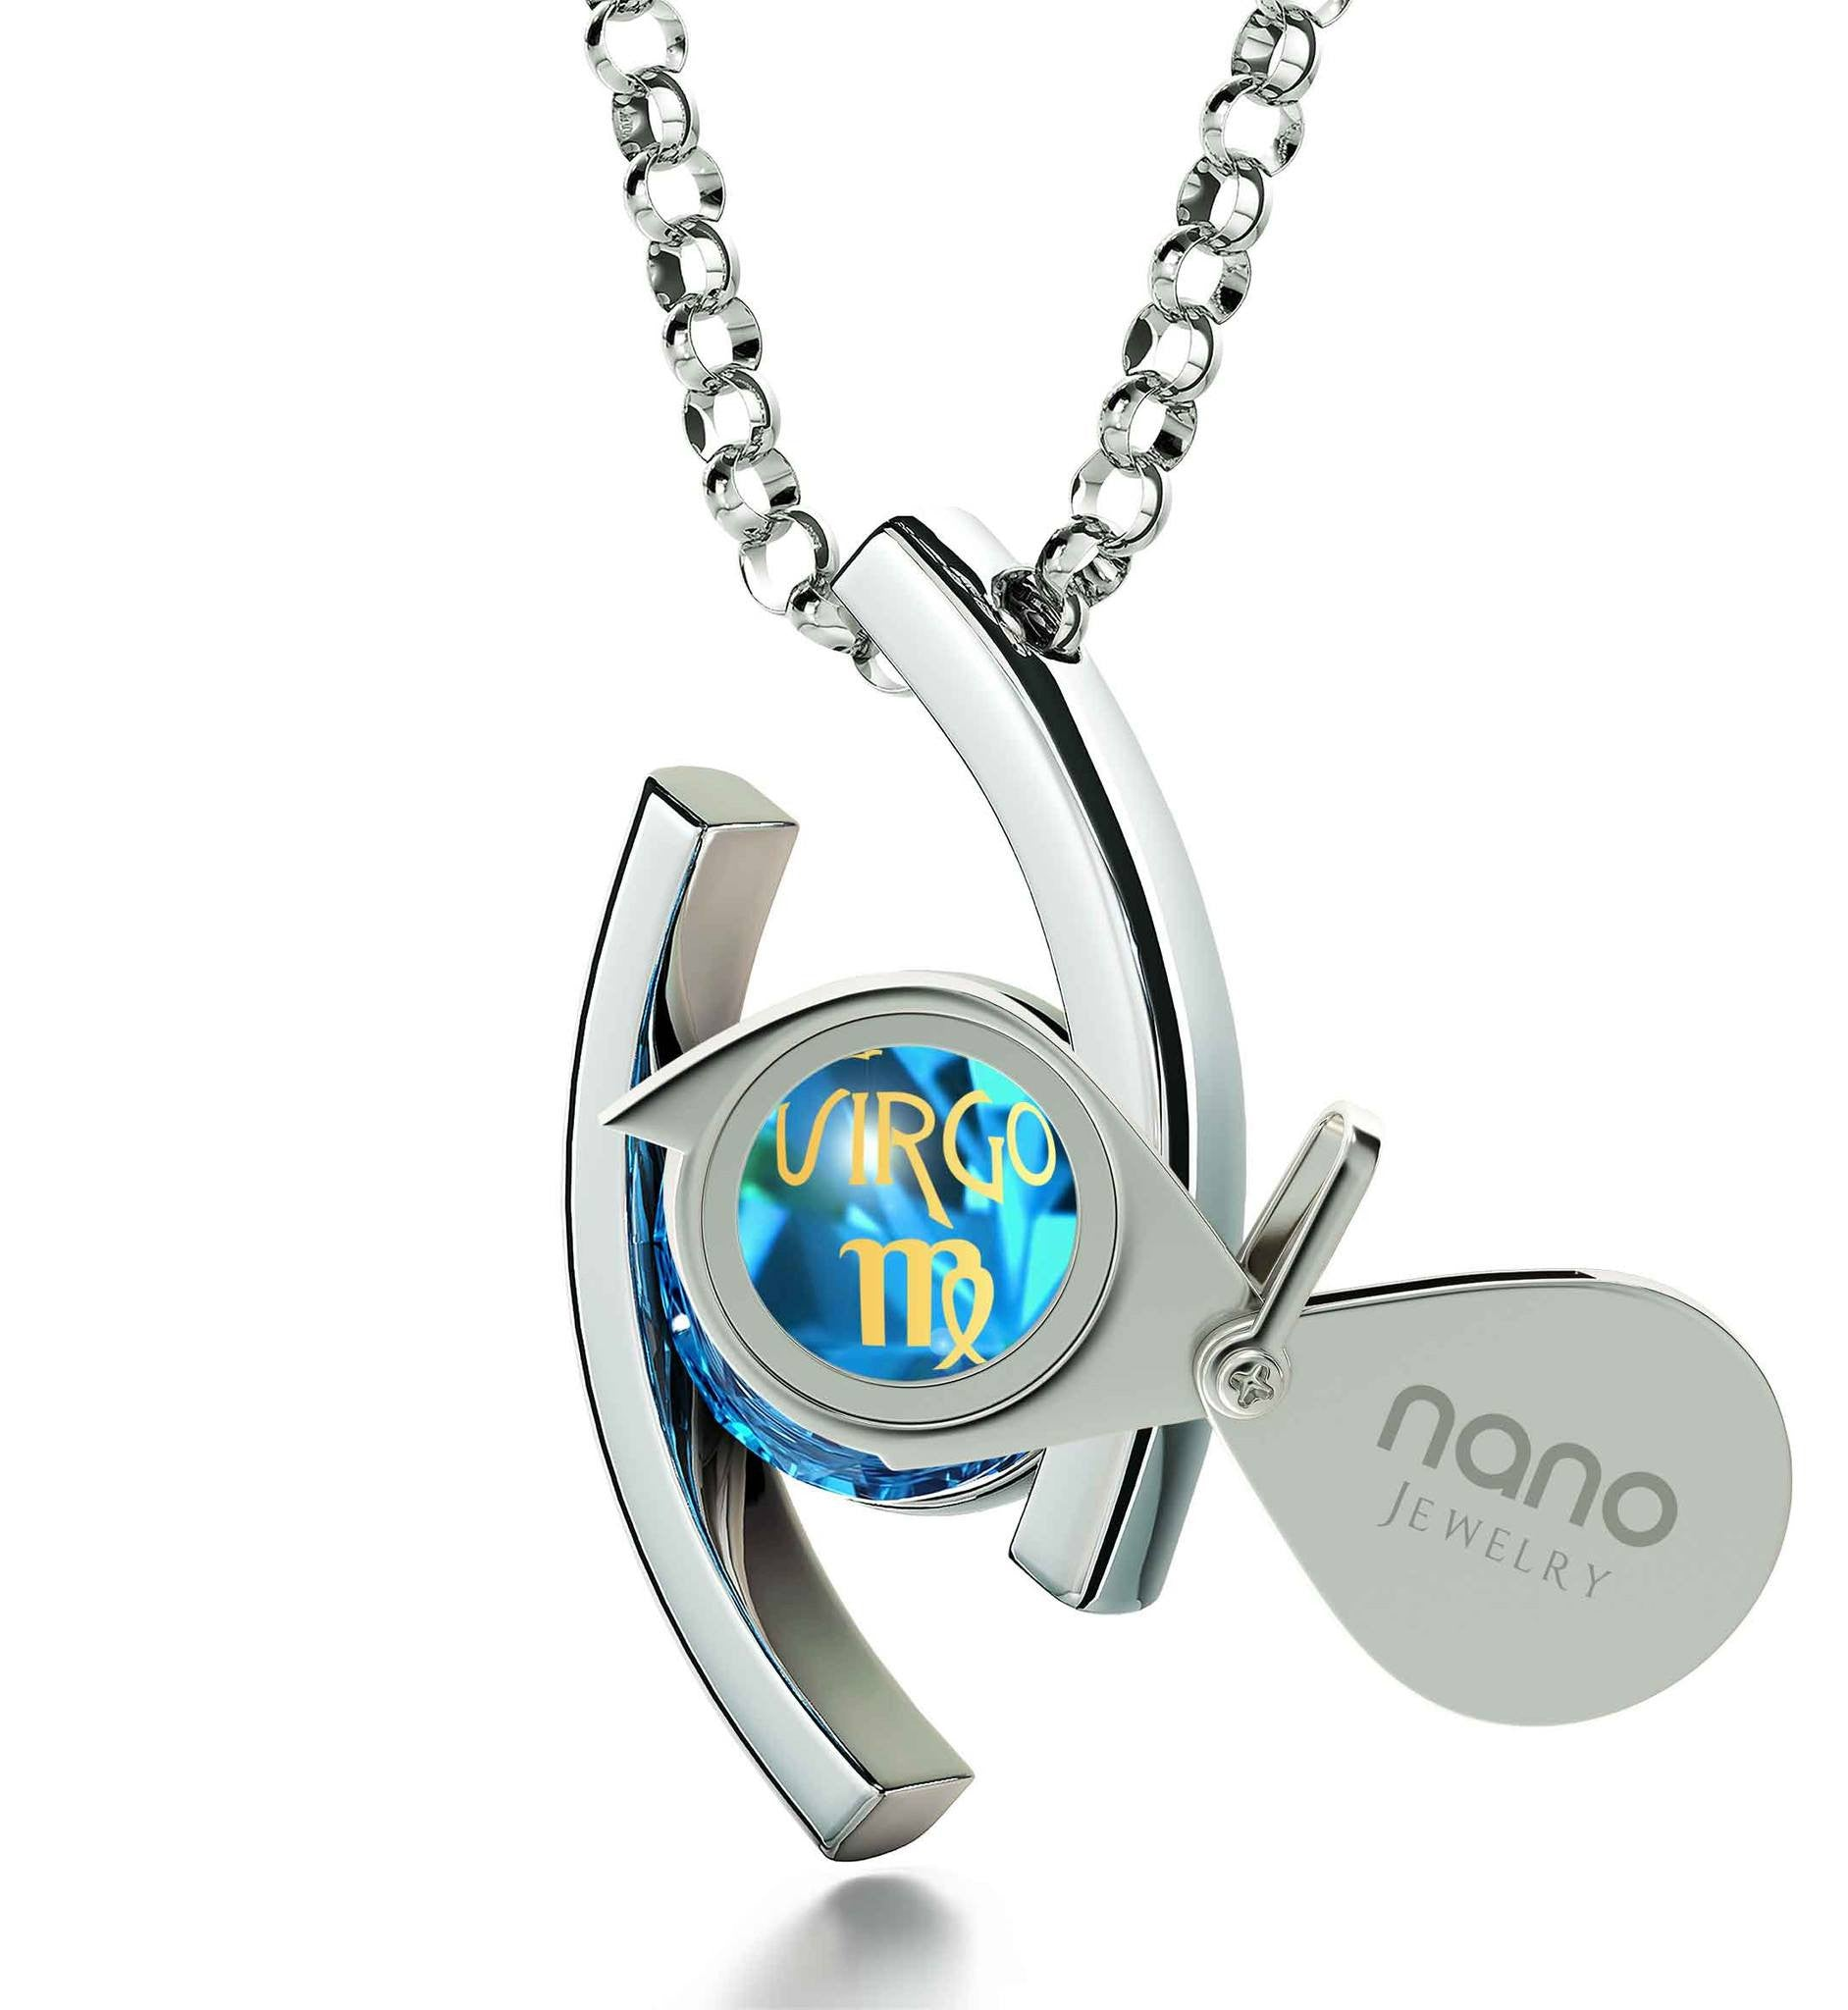 dance jewelry virgo necklace image moon in products timka